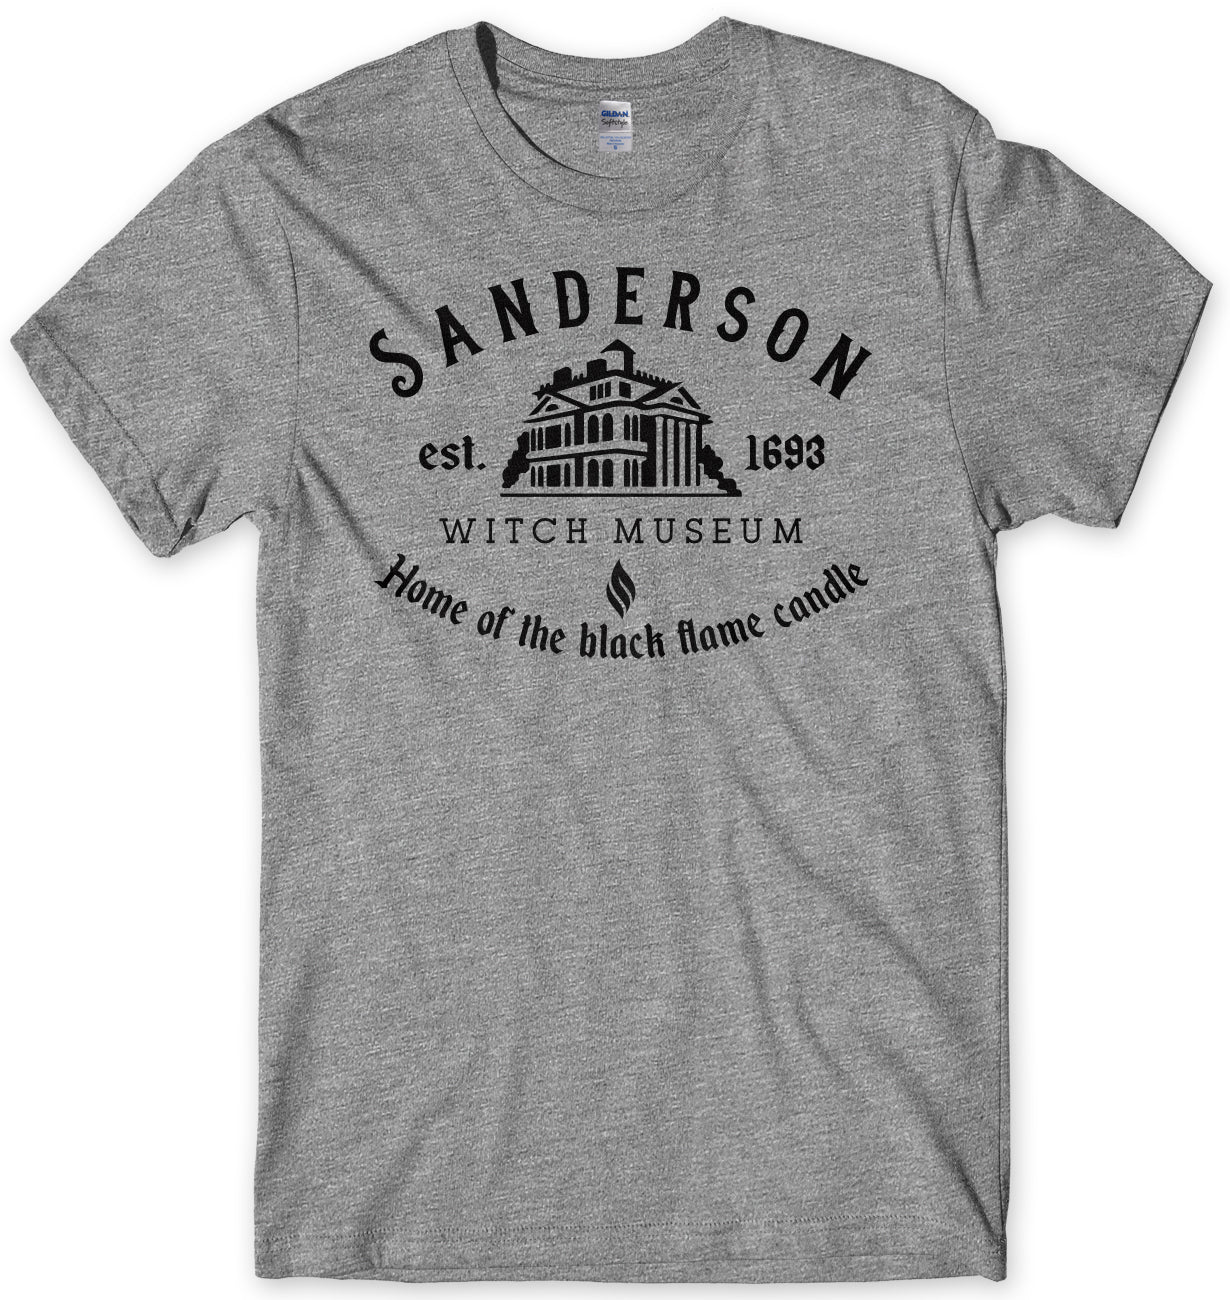 SANDERSON SISTERS WITCH MUSEUM INSPIRED BY HOCUS POCUS MENS UNISEX T-SHIRT